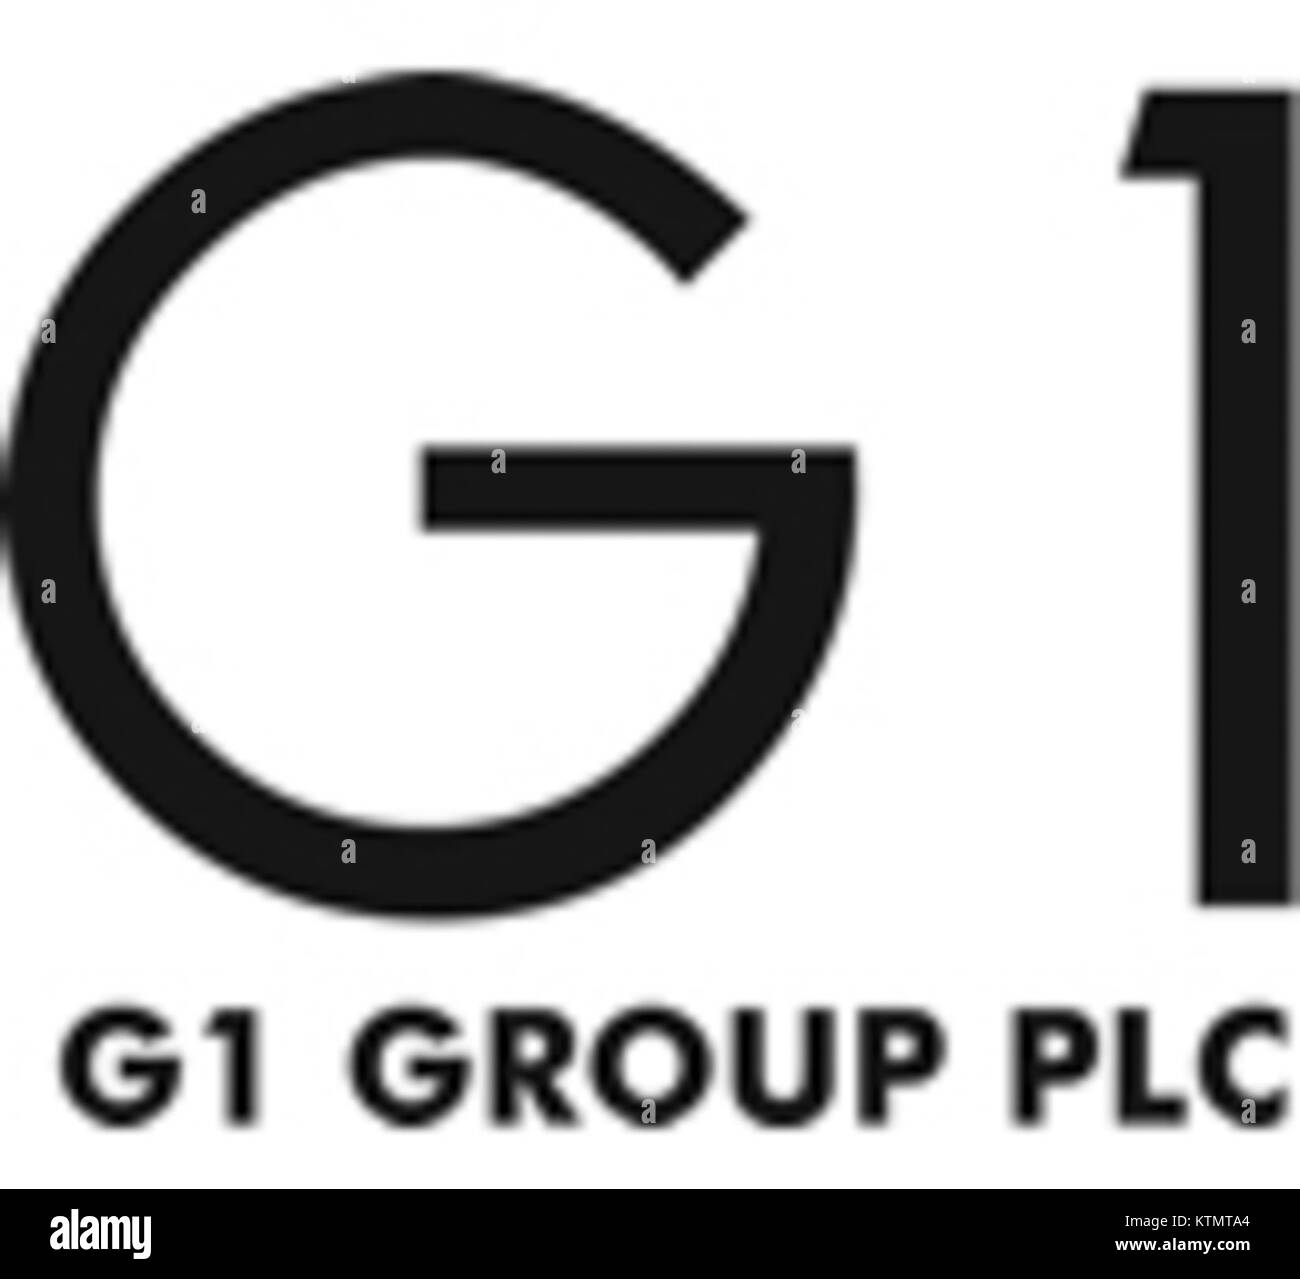 G1 Group - Stock Image